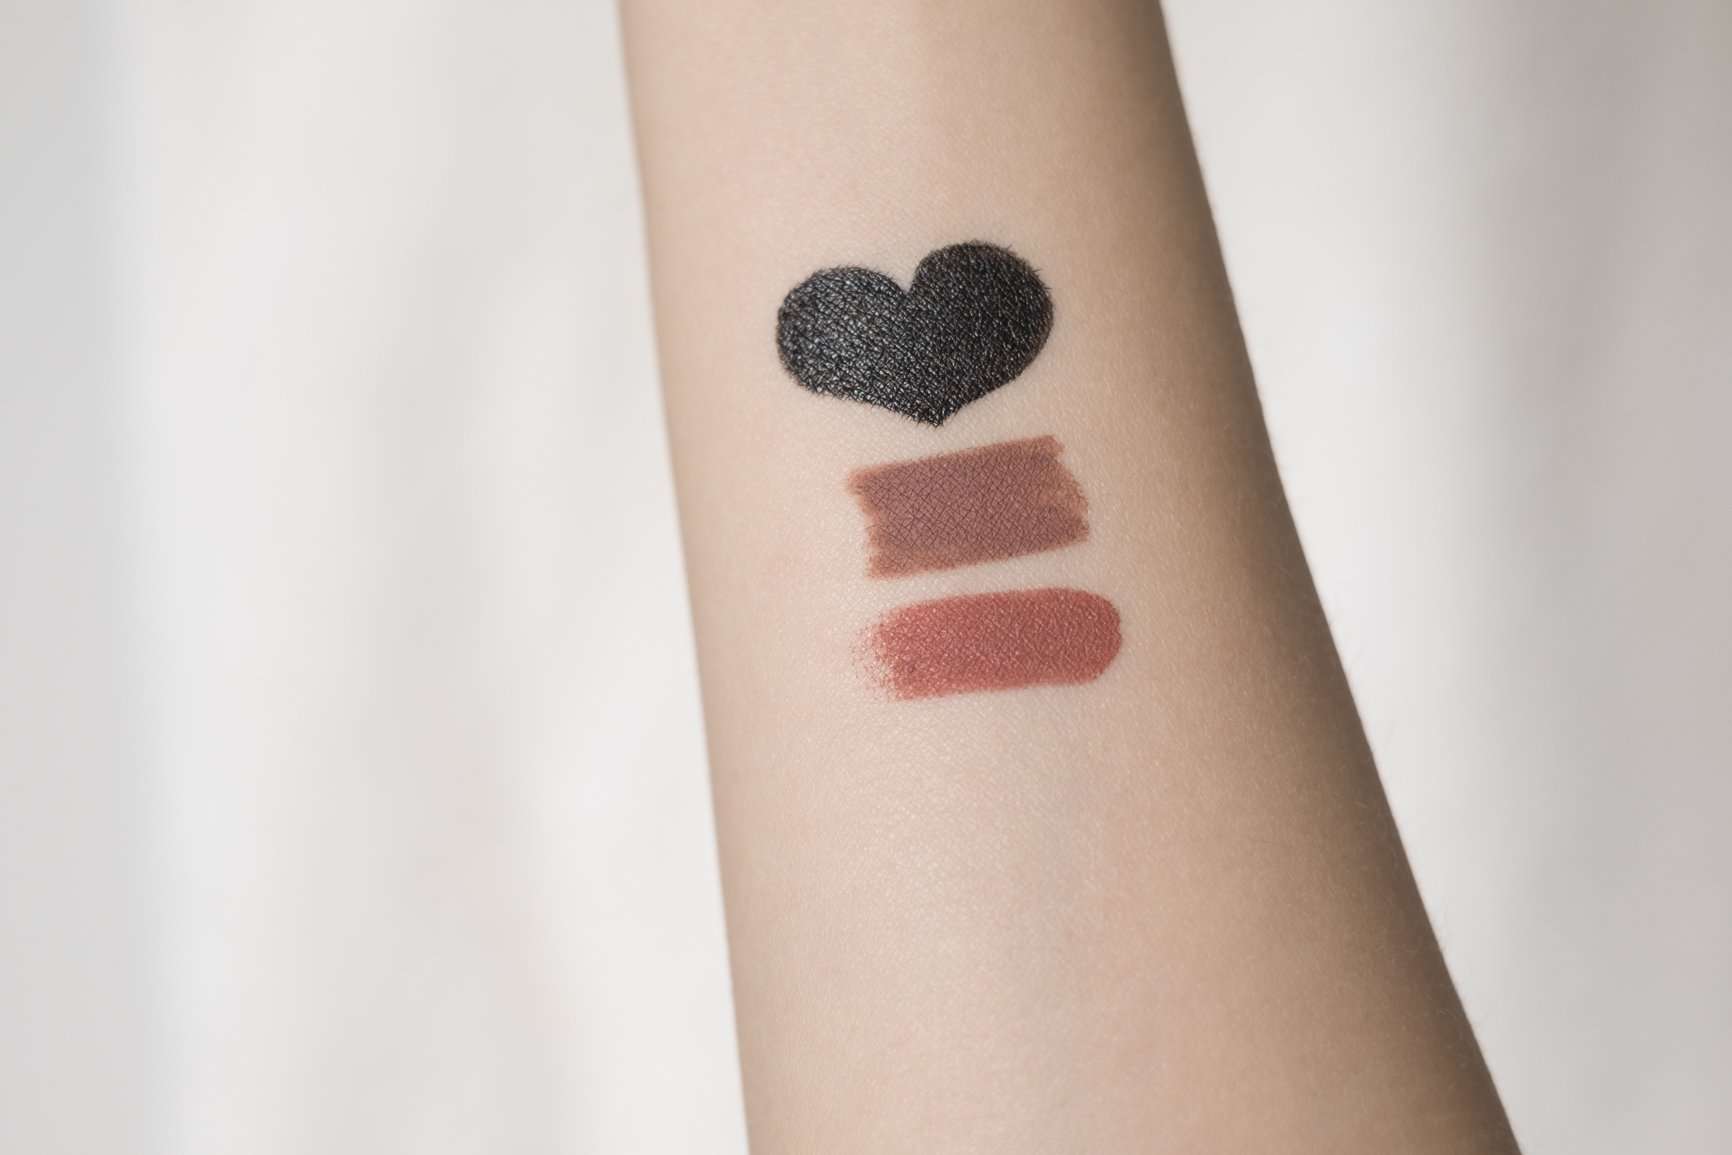 sunkissedblush-katvond-lip-liner-lipstick-lolita-double-dare-swatches (1 of 8)